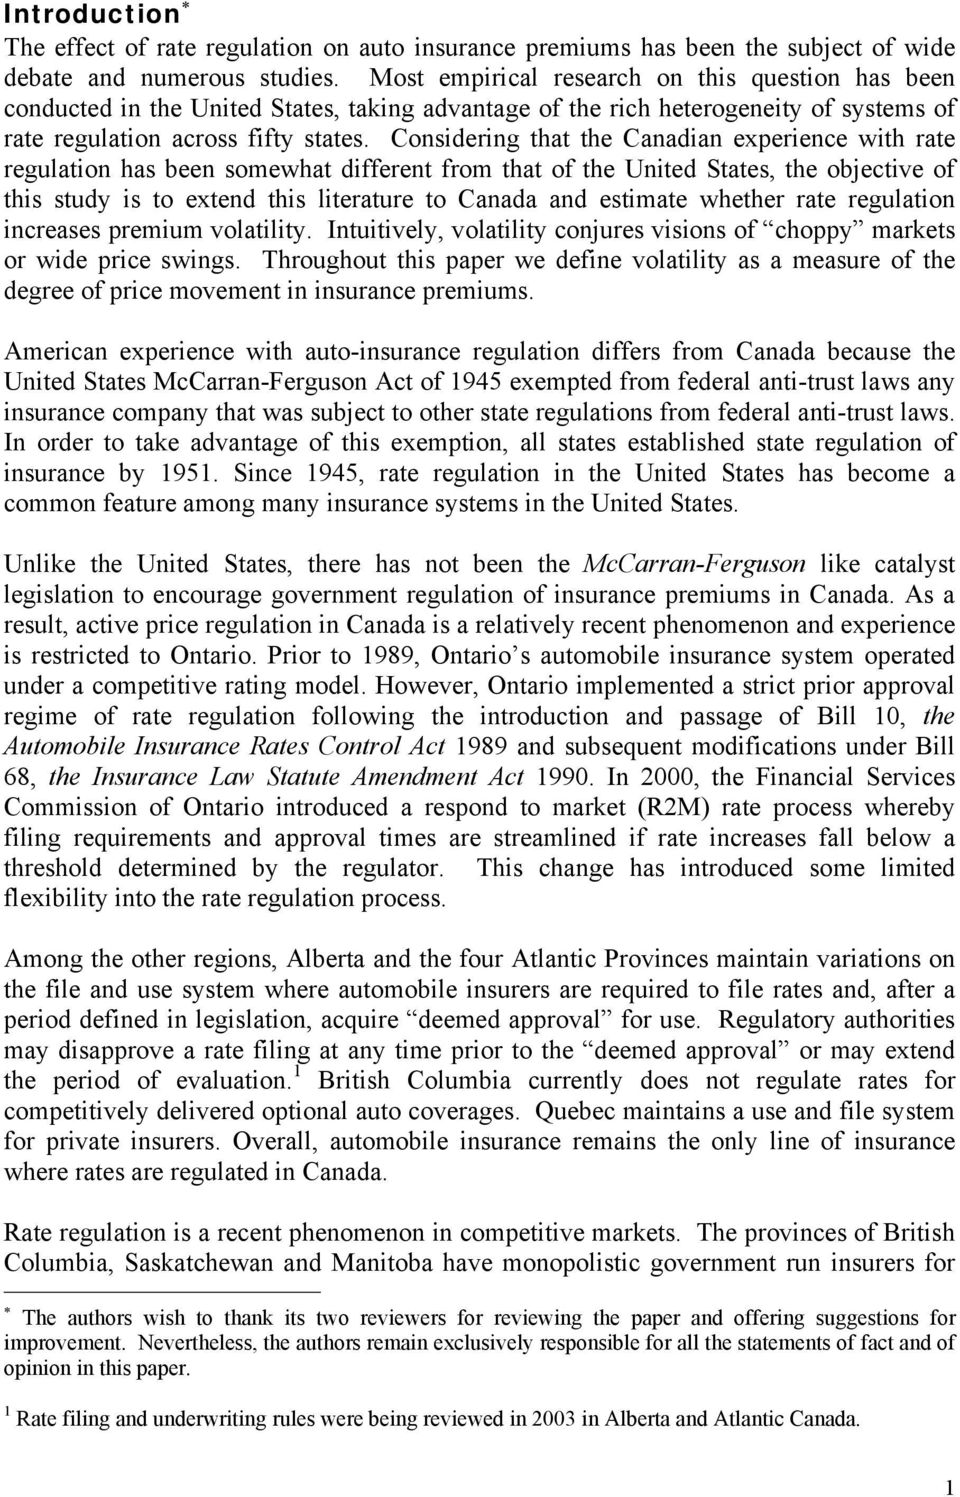 Considering that the Canadian experience with rate regulation has been somewhat different from that of the United States, the objective of this study is to extend this literature to Canada and